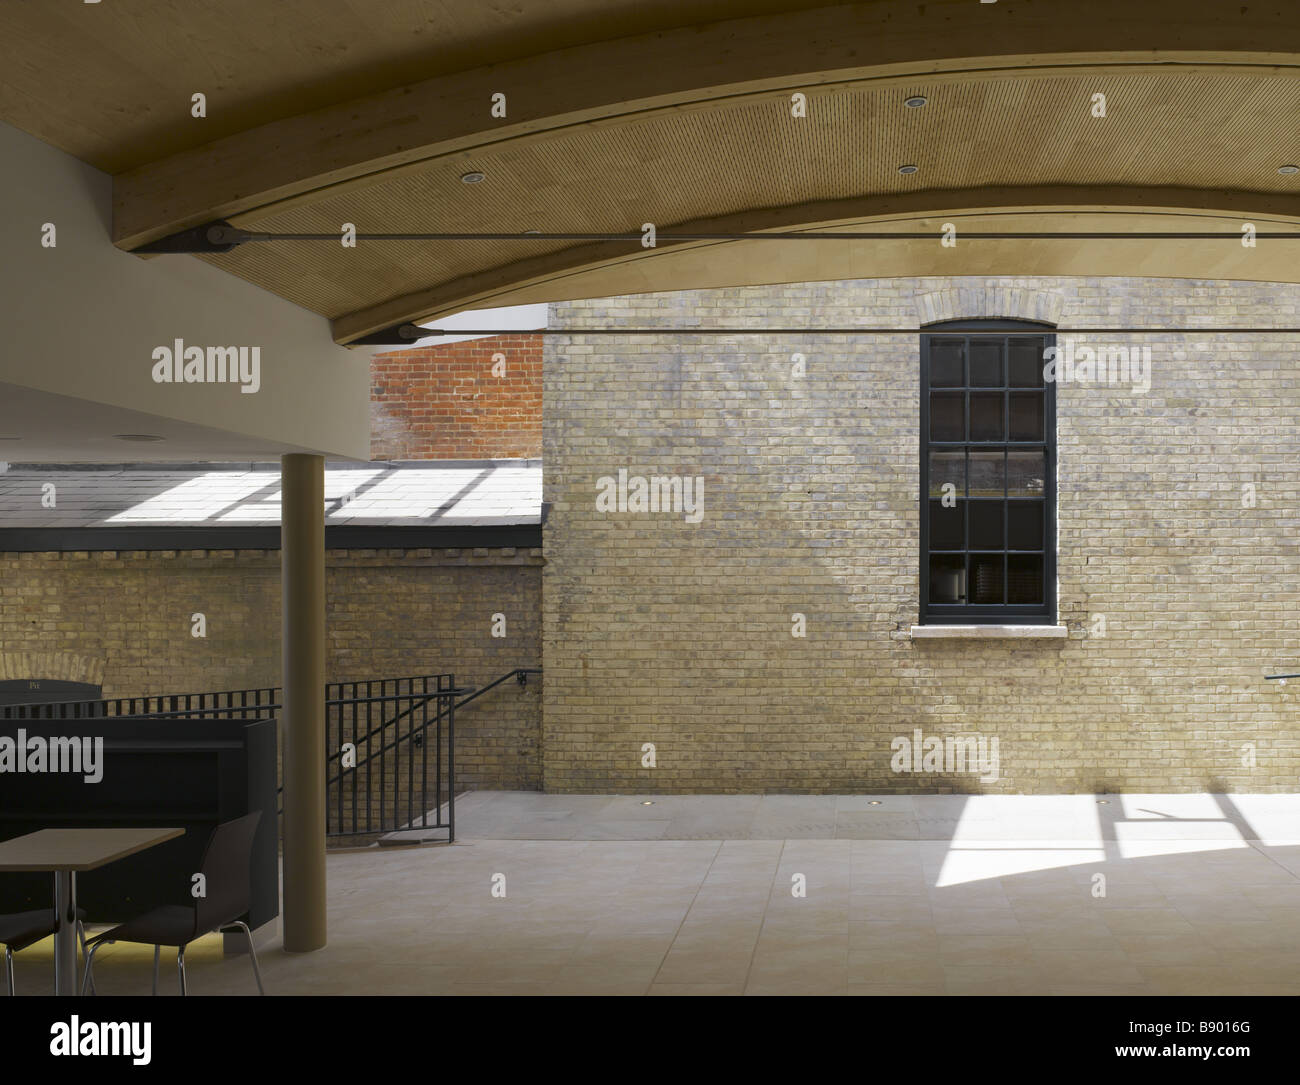 Covered area at the Theatre Royal, Bury St Edmunds, Suffolk. Stock Photo